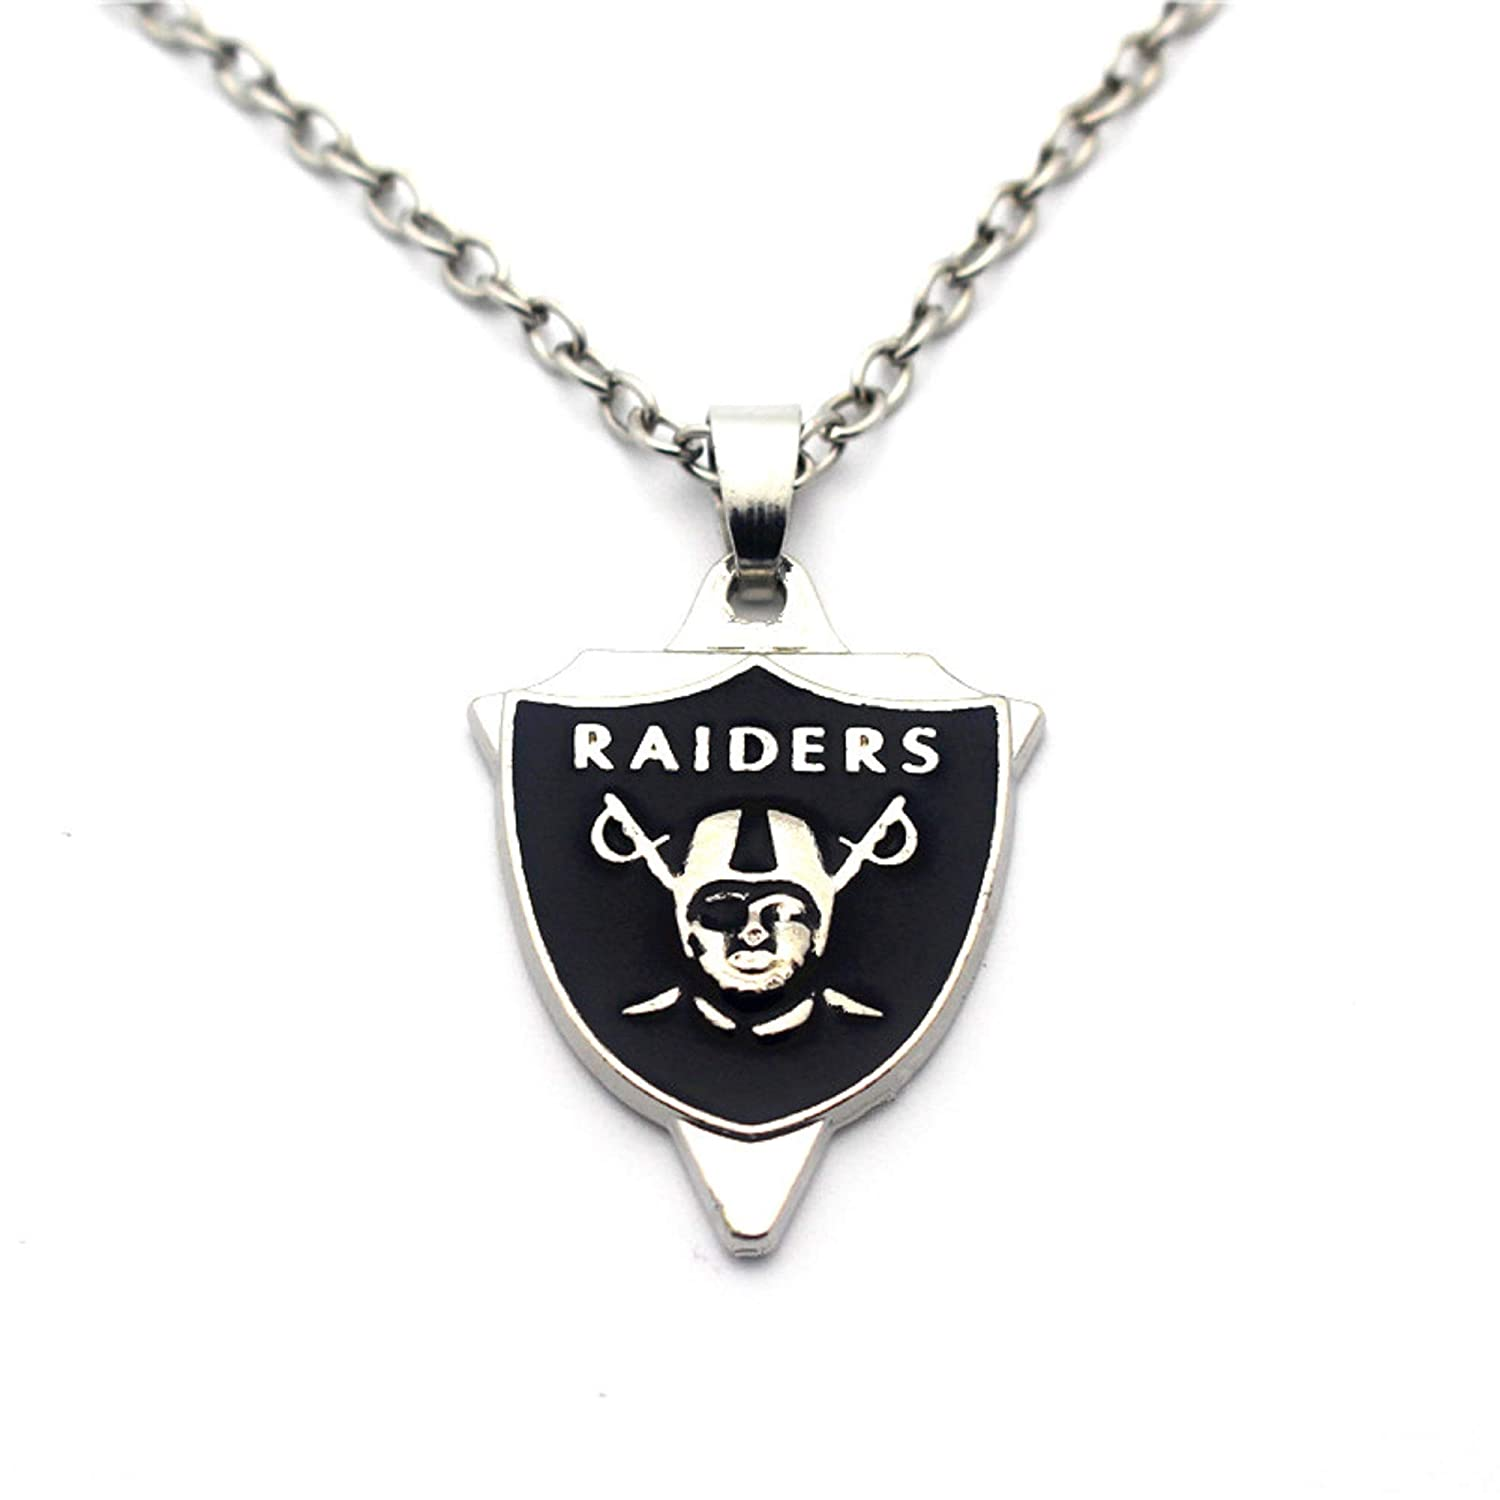 BAS Oakland Raiders Necklace with Triangle Pendant with 20 inch Stainless Steel Chain Necklace